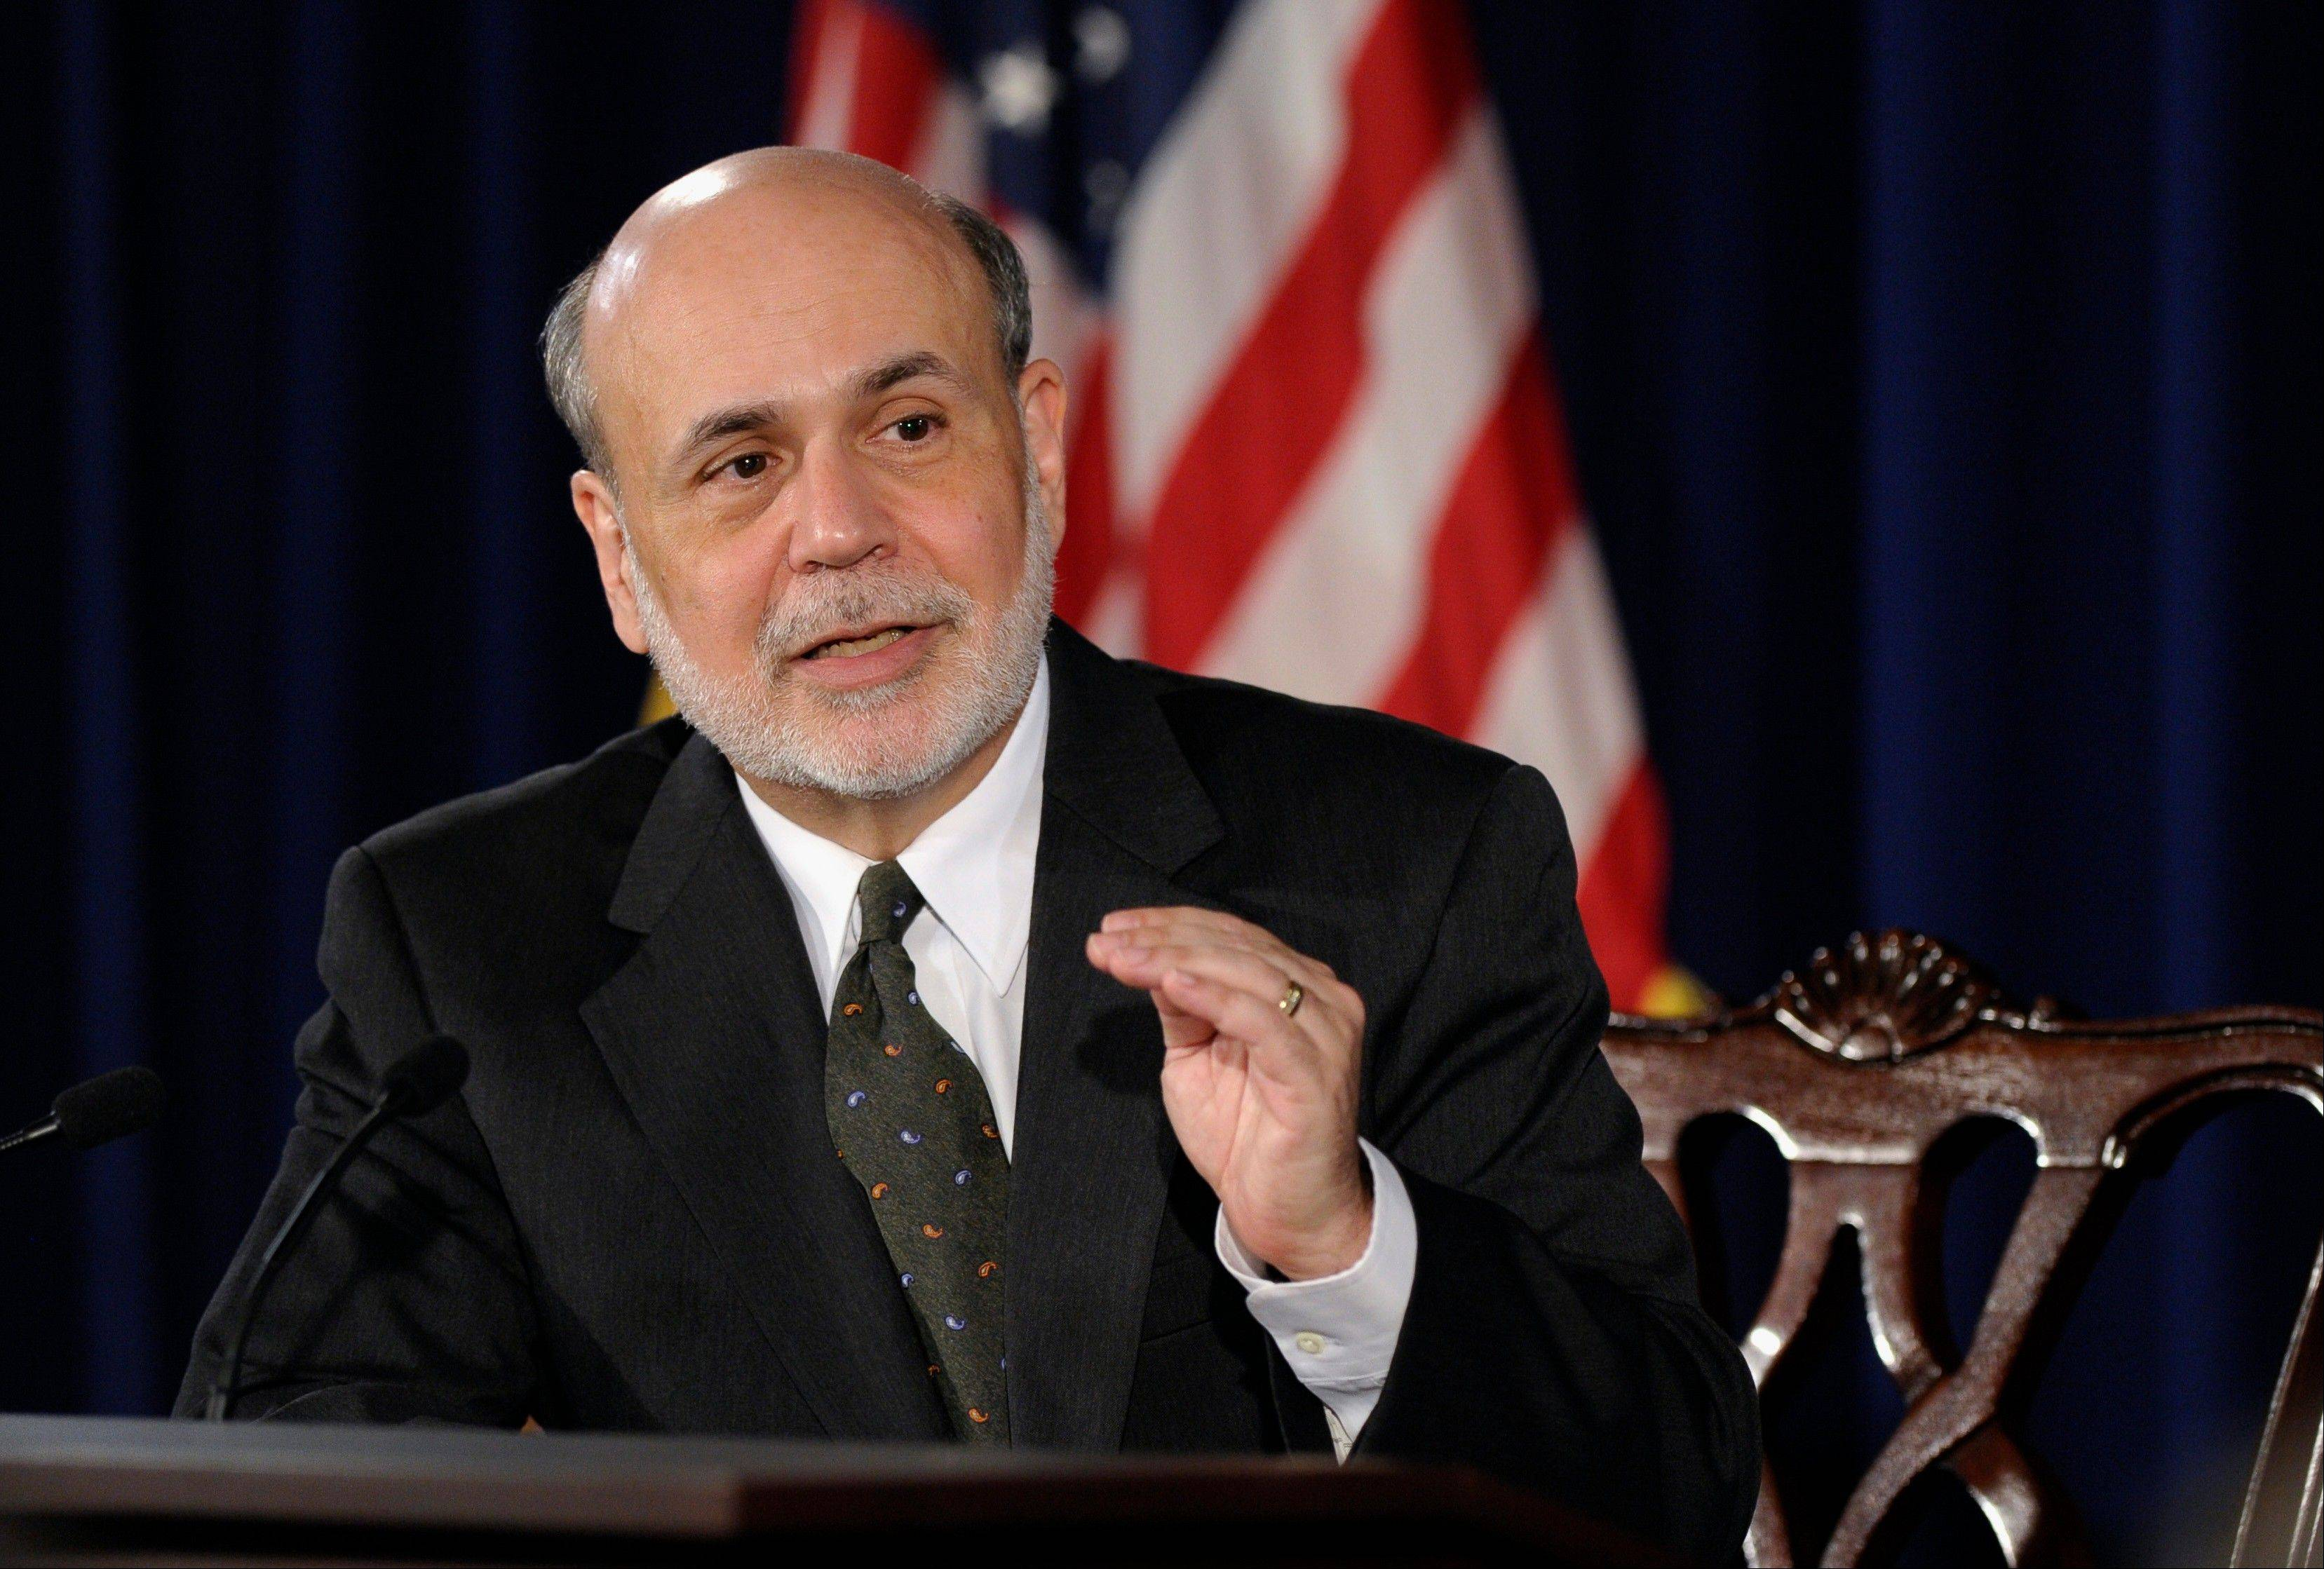 Federal Reserve Chairman Ben Bernanke speaks during a news conference in Washington Wednesday, when the Fed signaled it�s moving closer to slowing its bond-buying program,